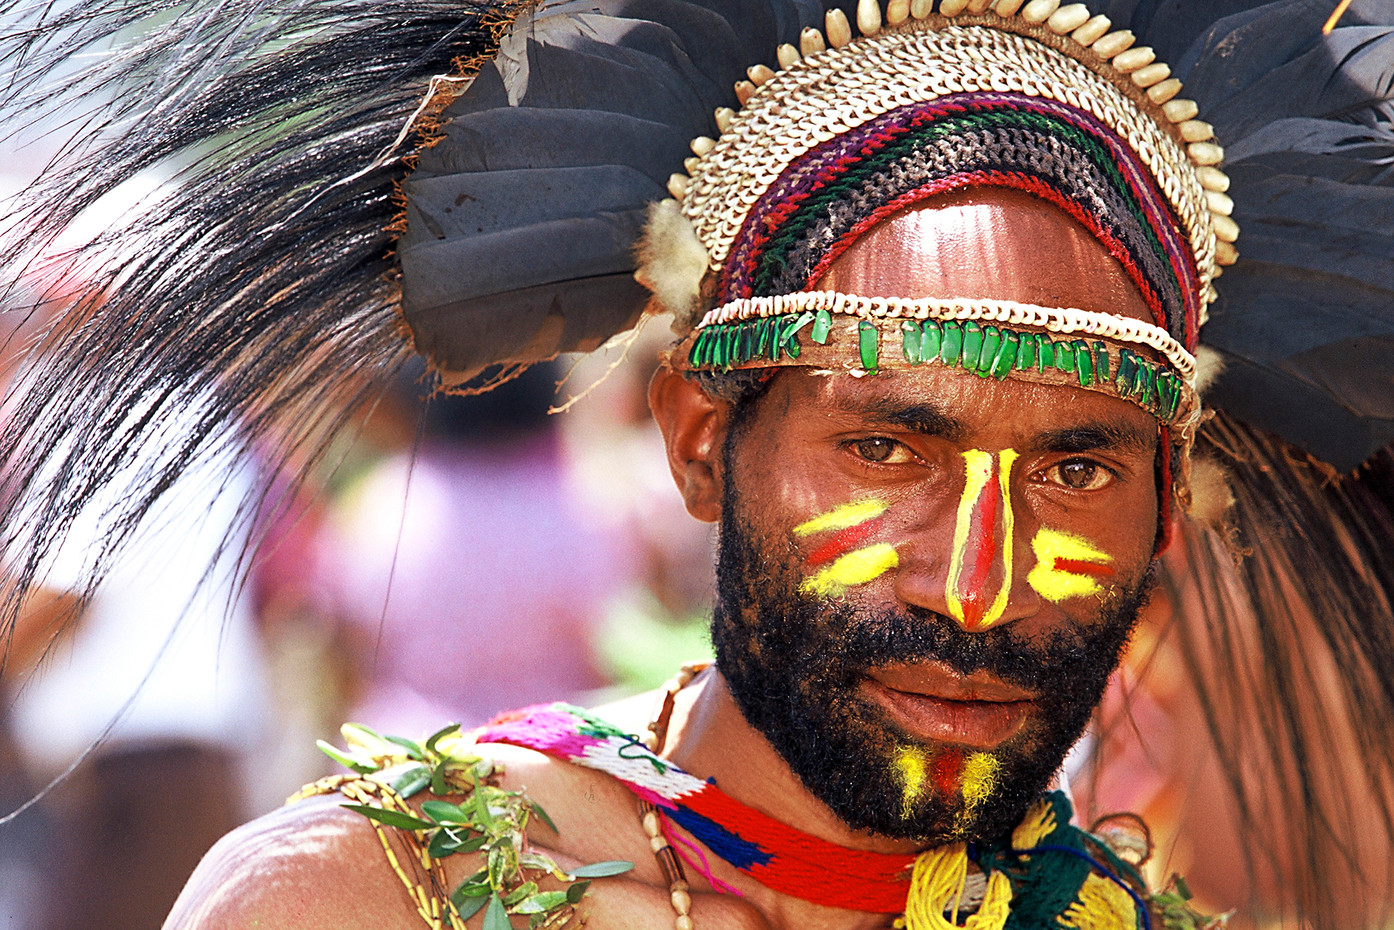 Highland Show in Goroka, Papua New Guinea